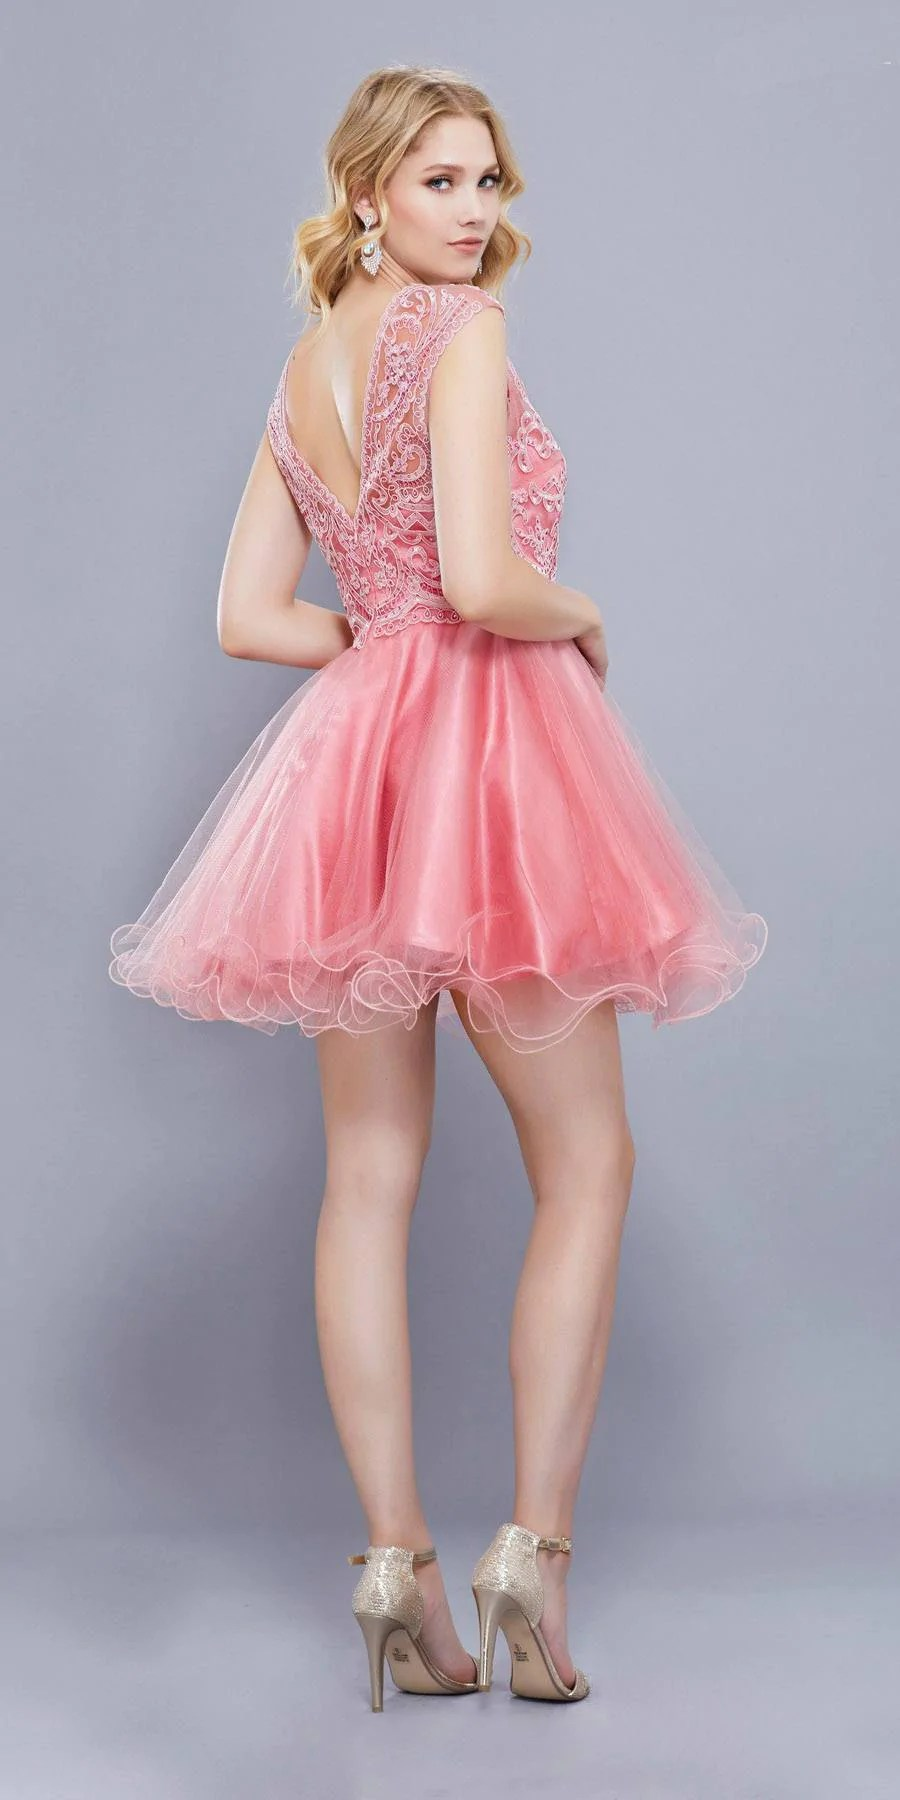 Cap Sleeves Poofy Short Homecoming Dress Appliqued Bodice